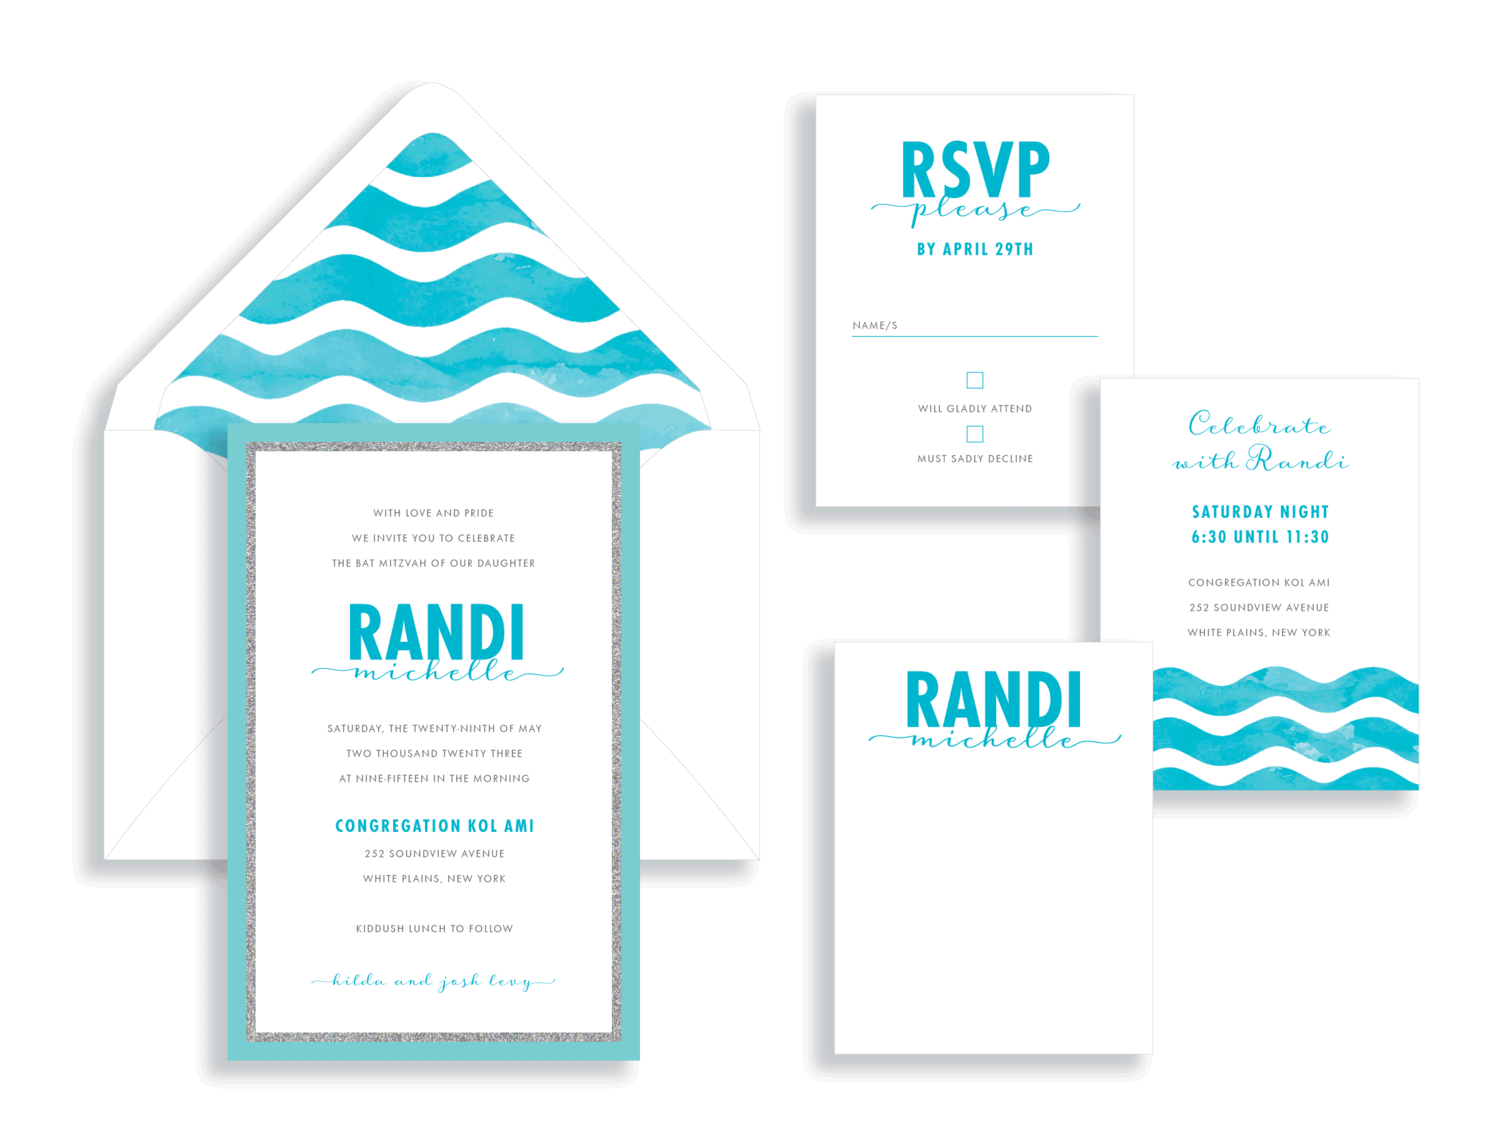 Randi Michelle Wave Bat Mitzvah Invitation in turquoise.  Bat Mitzvah invitations Northern Virginia Fairfax.